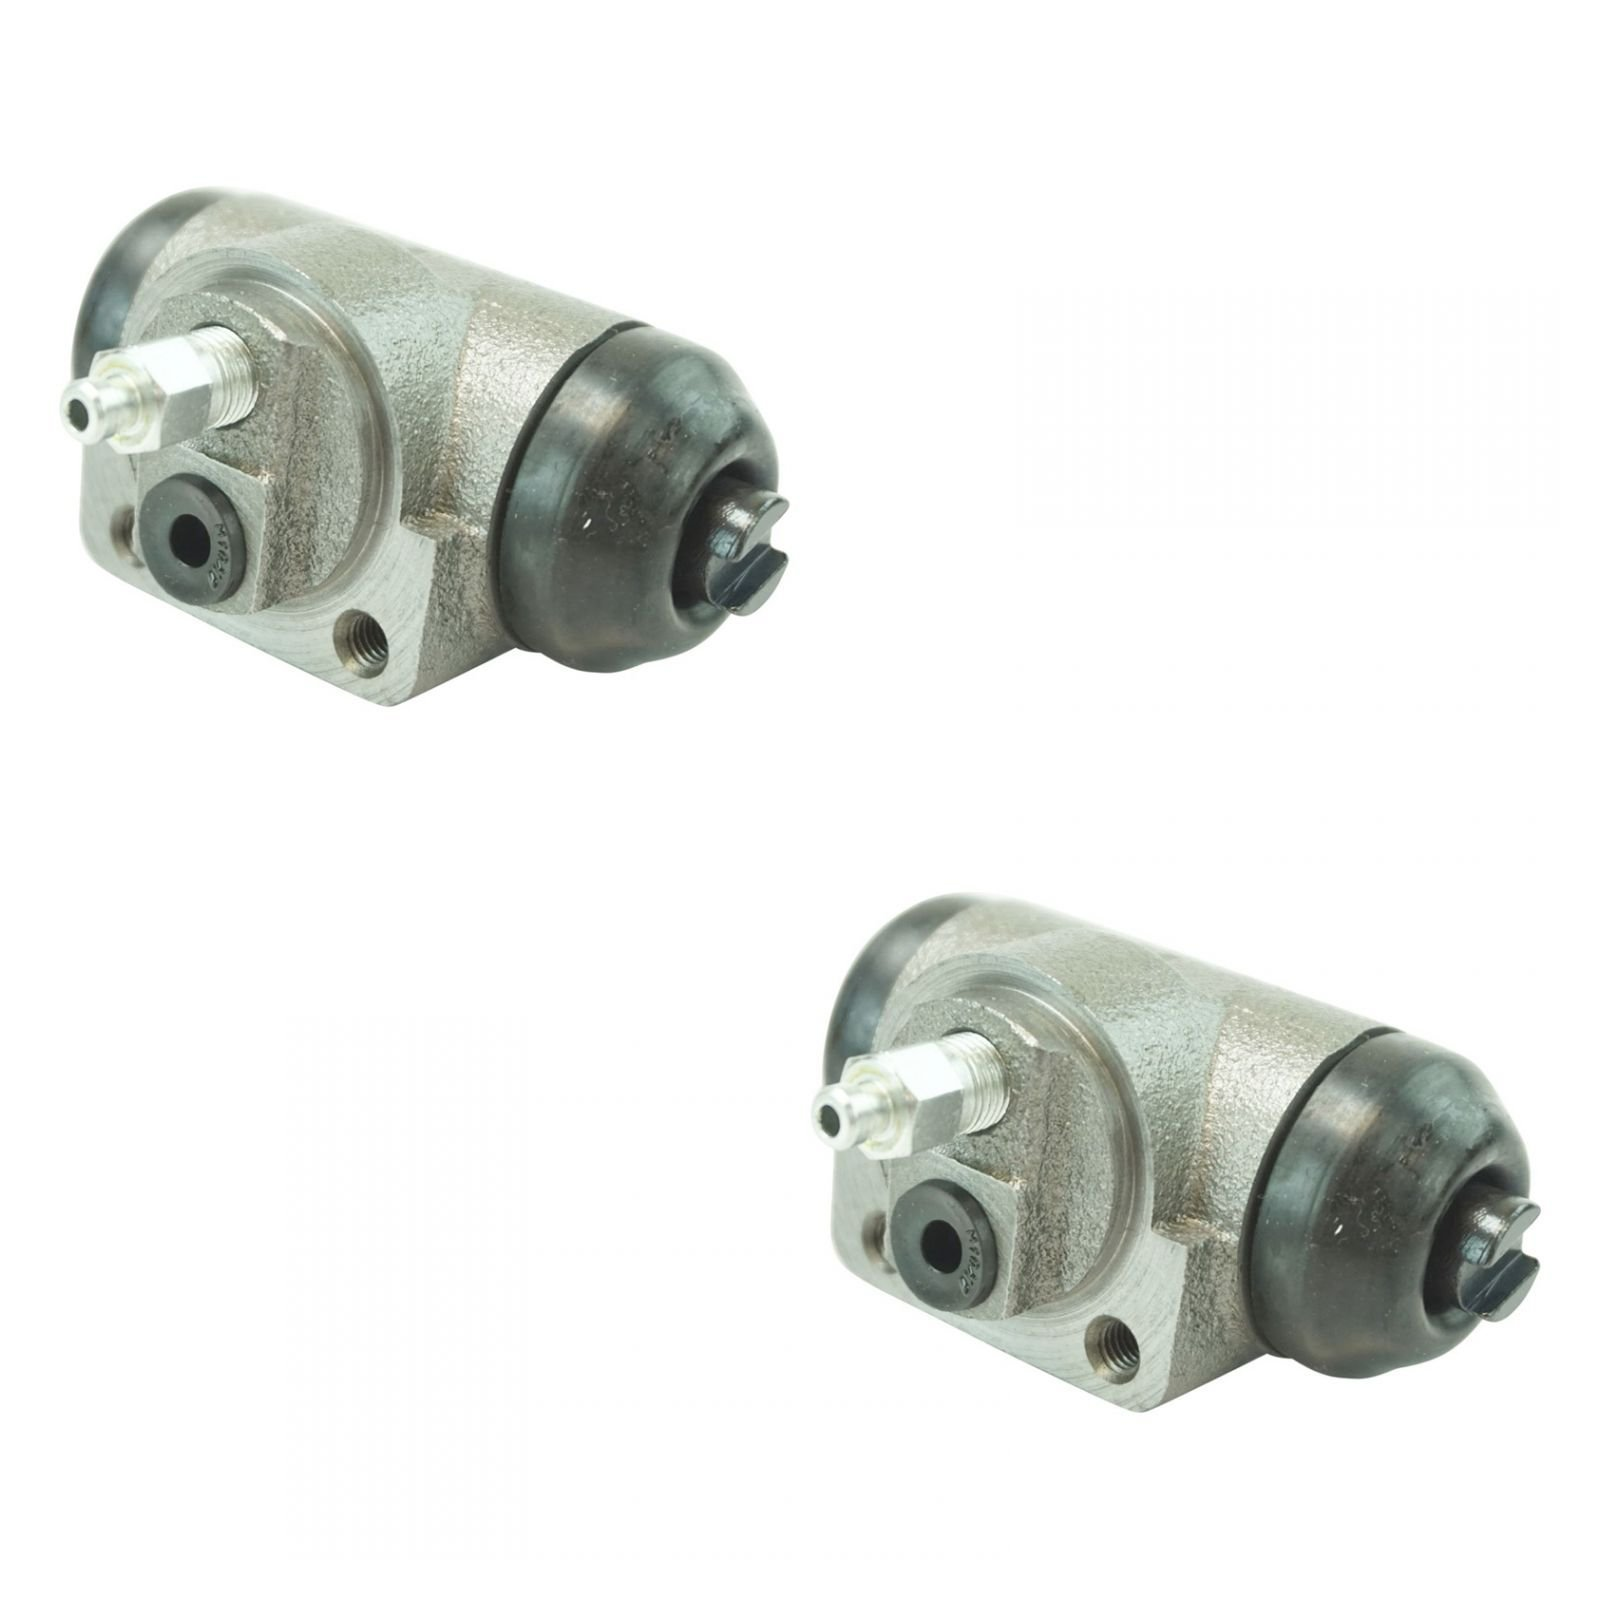 Dorman W37857 Rear Wheel Cylinder LH & RH Kit Pair Set of 2 for Ford Nissan